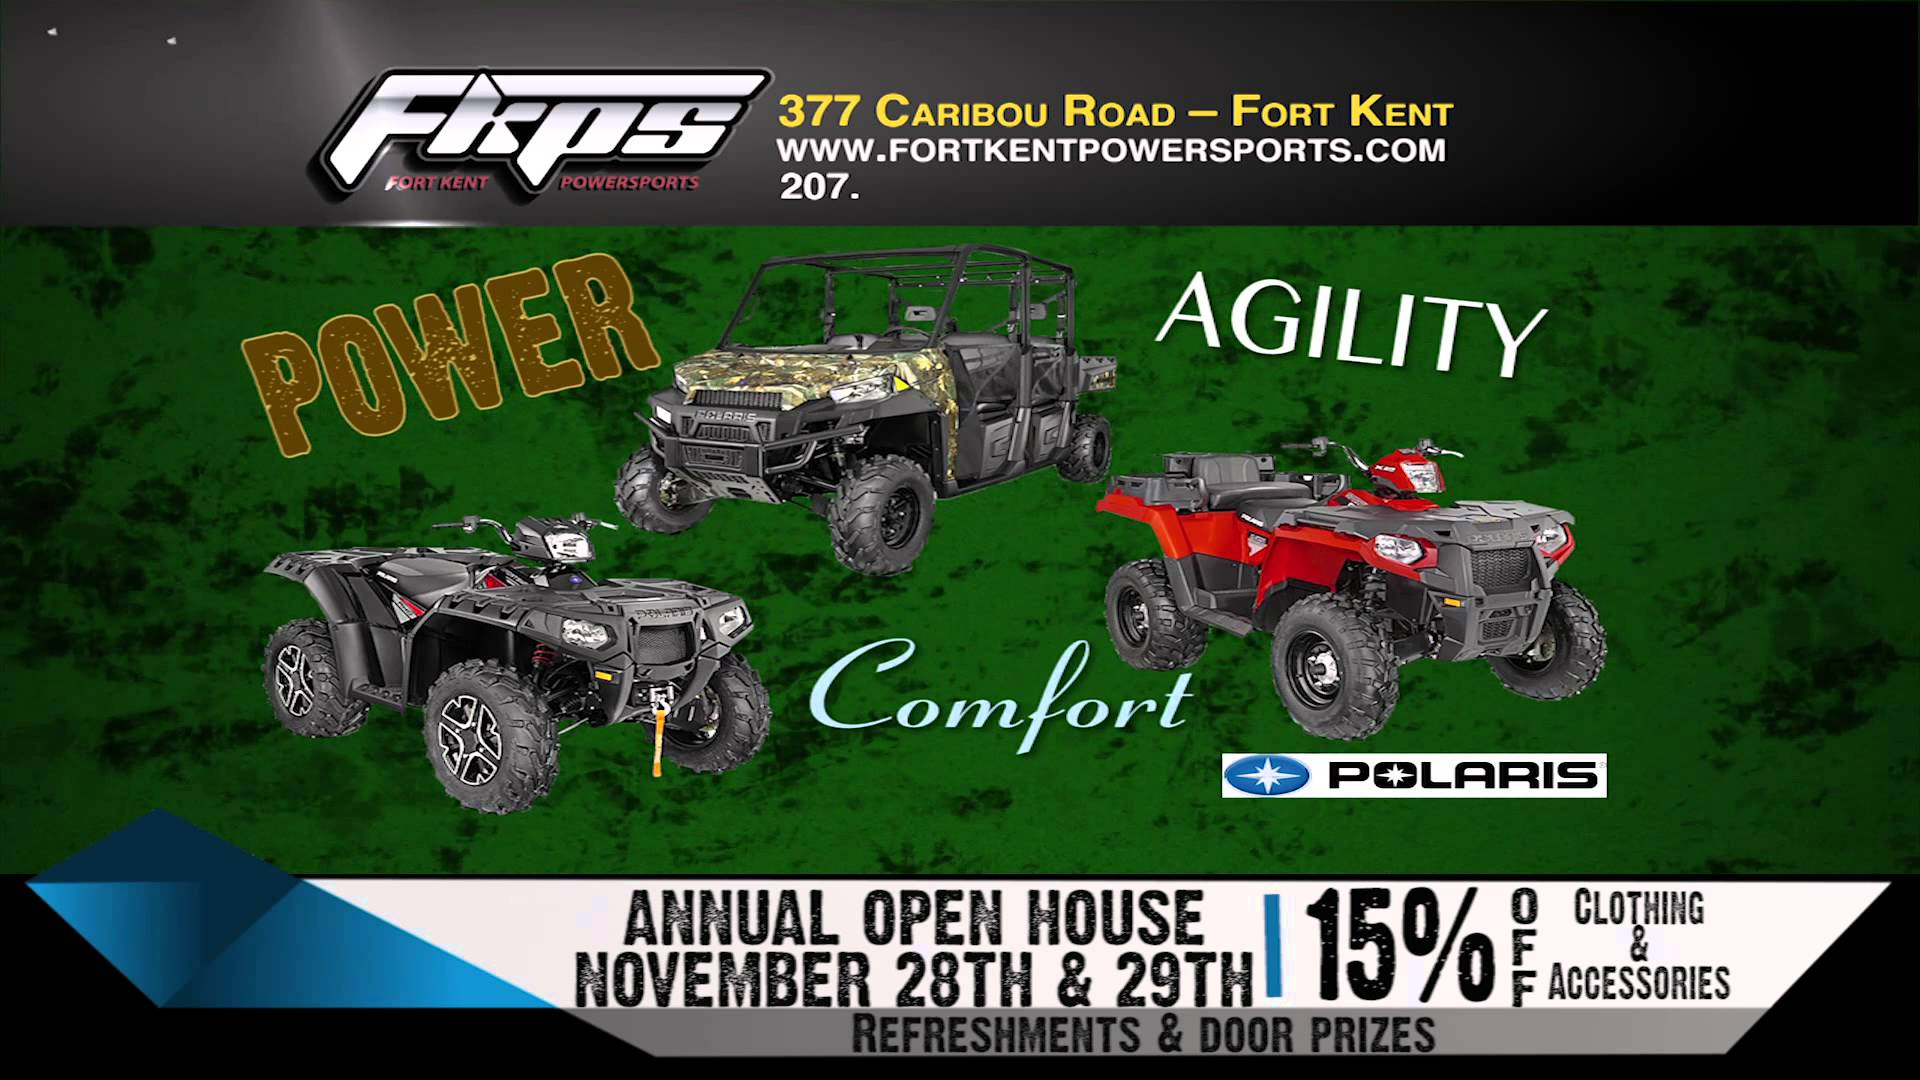 FORT KENT POWERSPORTS POLARIS OPEN HOUSE 1114 RMVP226B HD